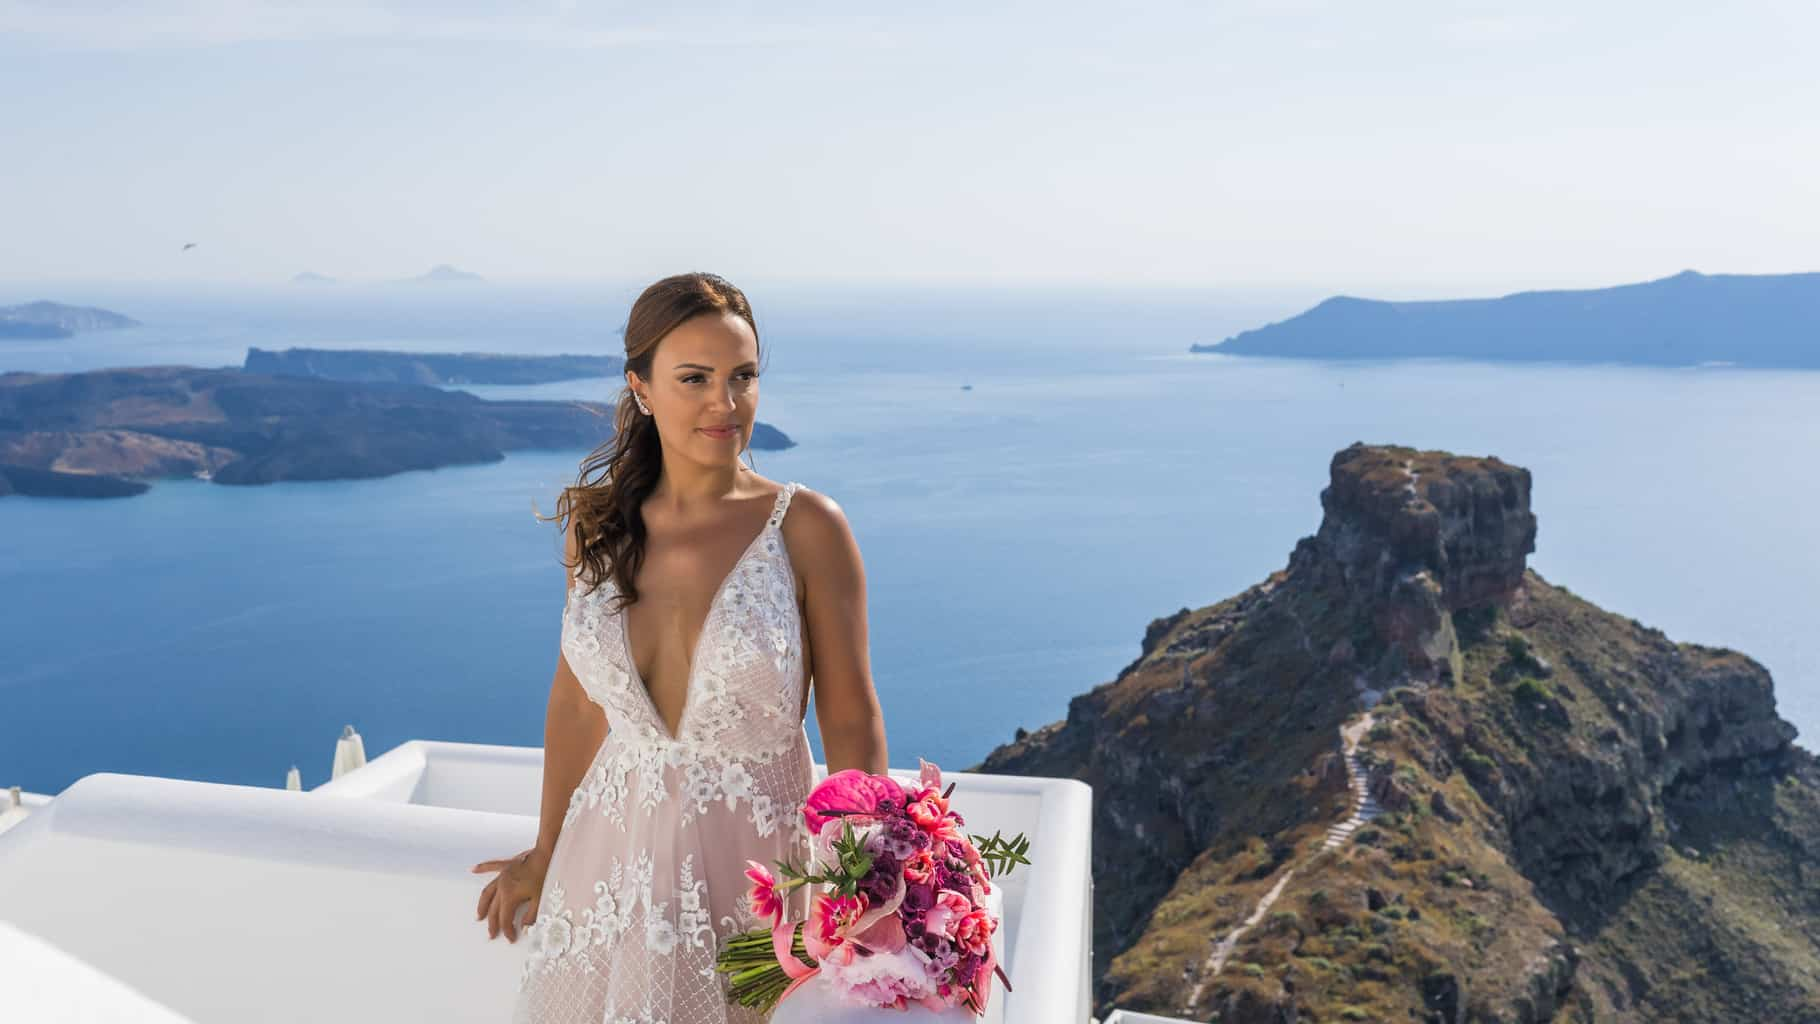 Destination-wedding-grecia-elopment-wedding-fotografia-life-click-studioLFC160of185